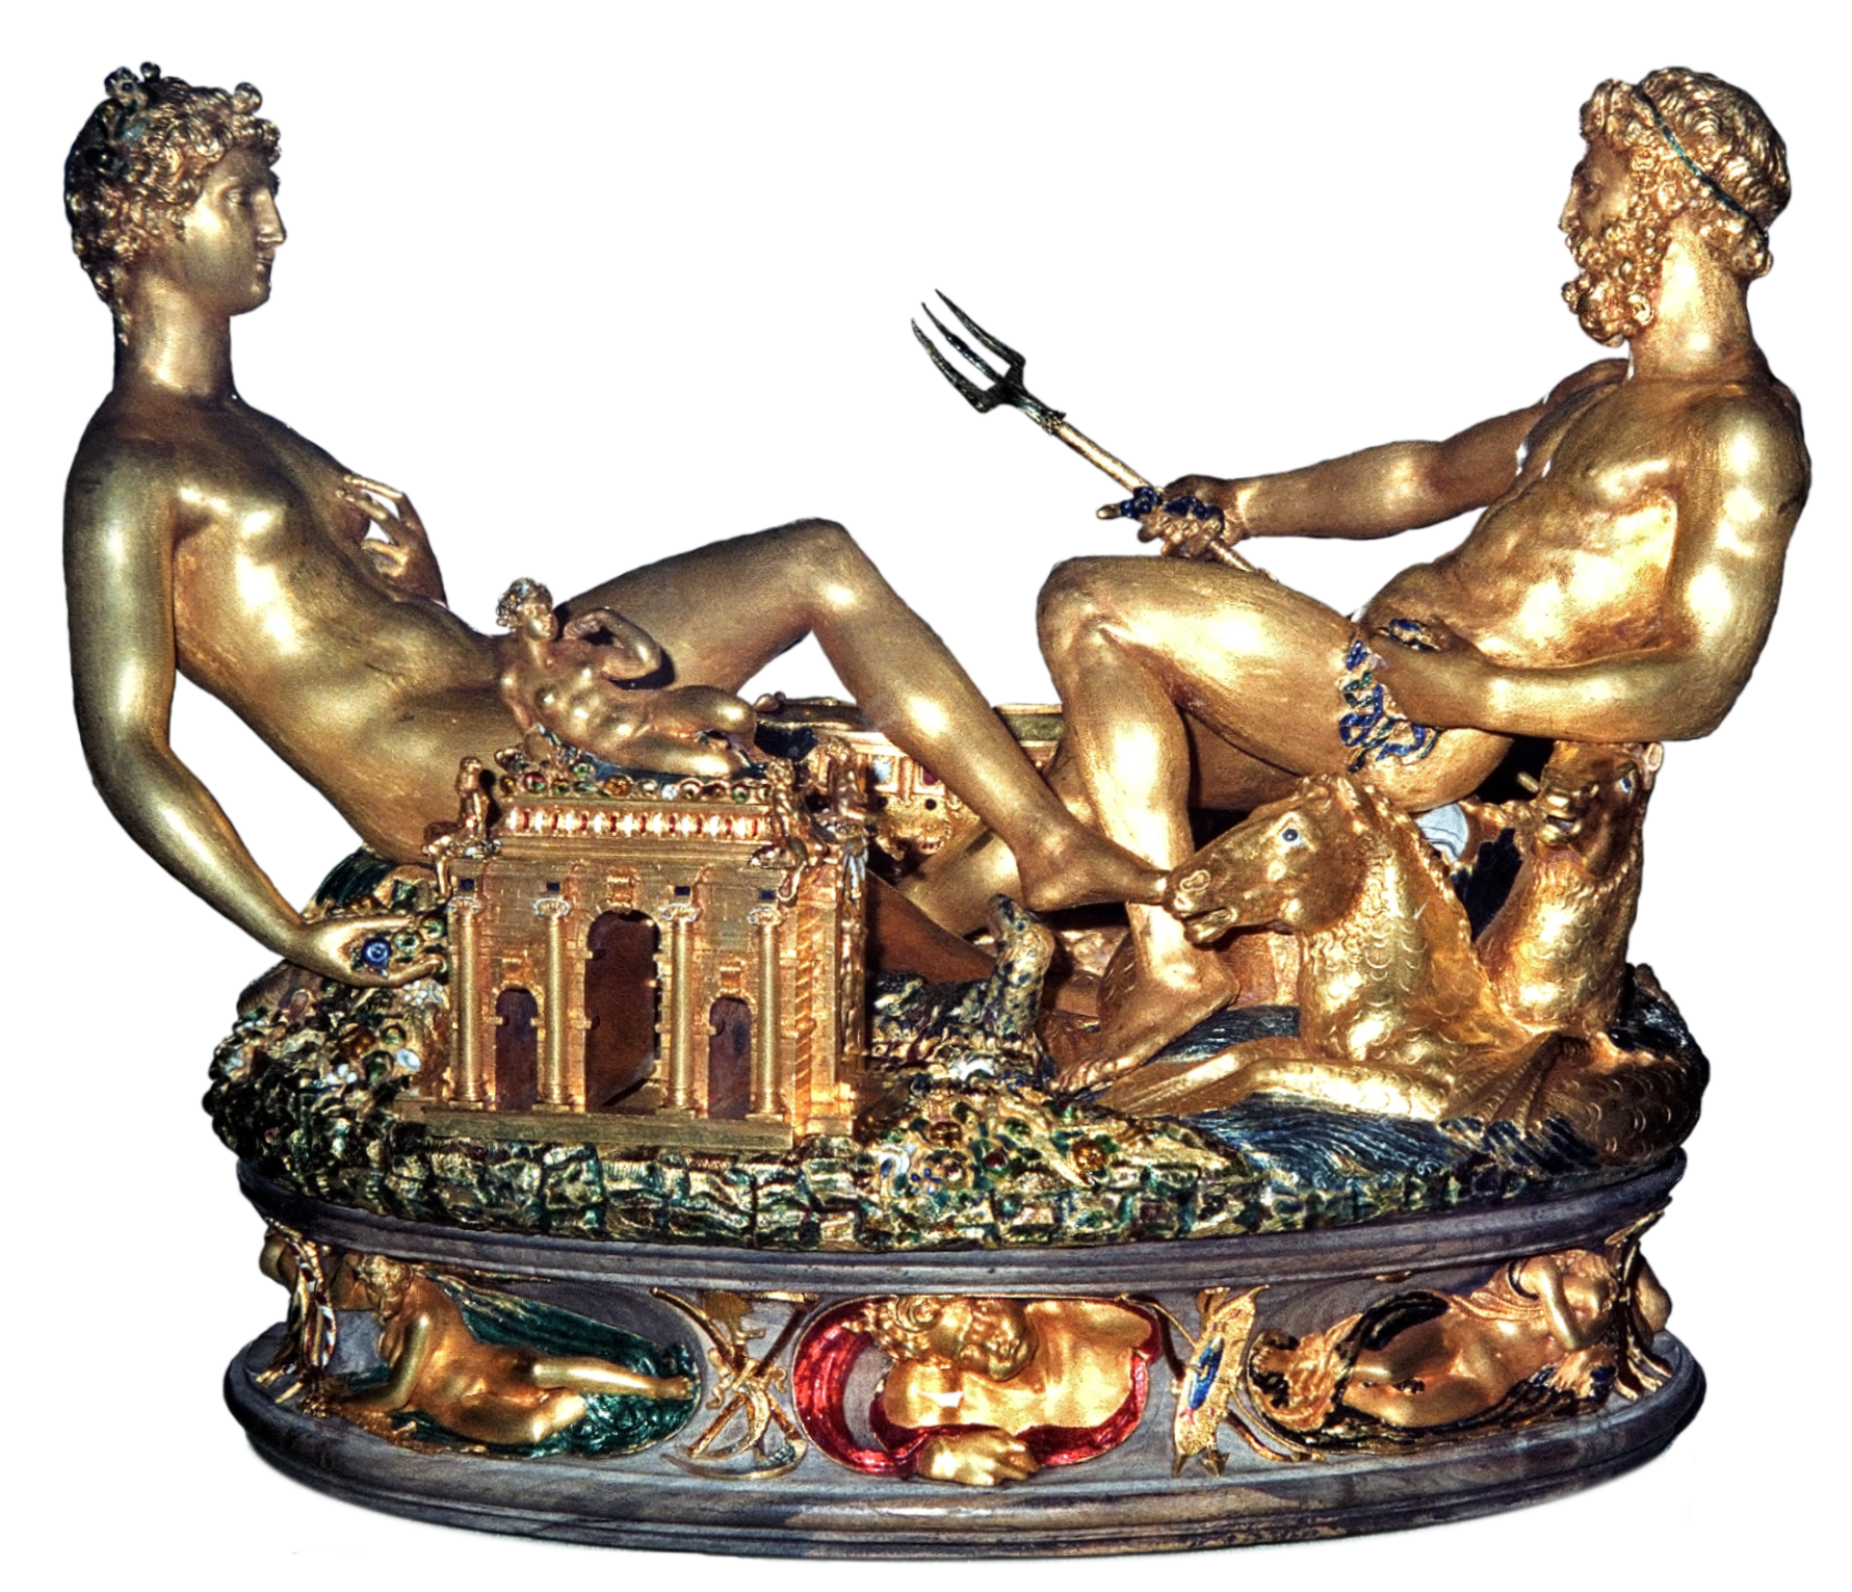 Benvenuto Cellini's Salt Cellar and Silver Spoon